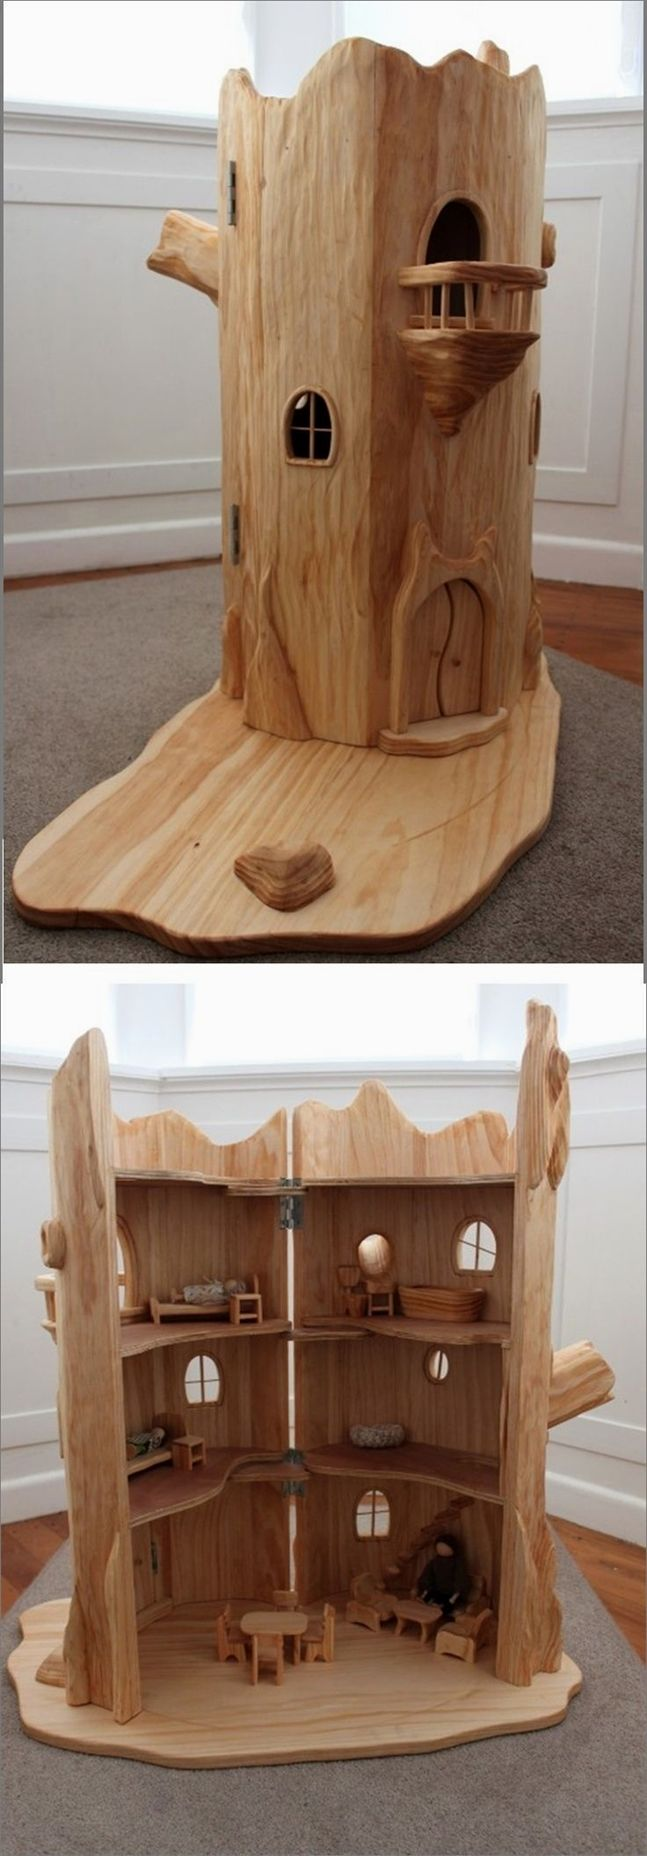 best досуг images on pinterest wood toys woodworking plans and